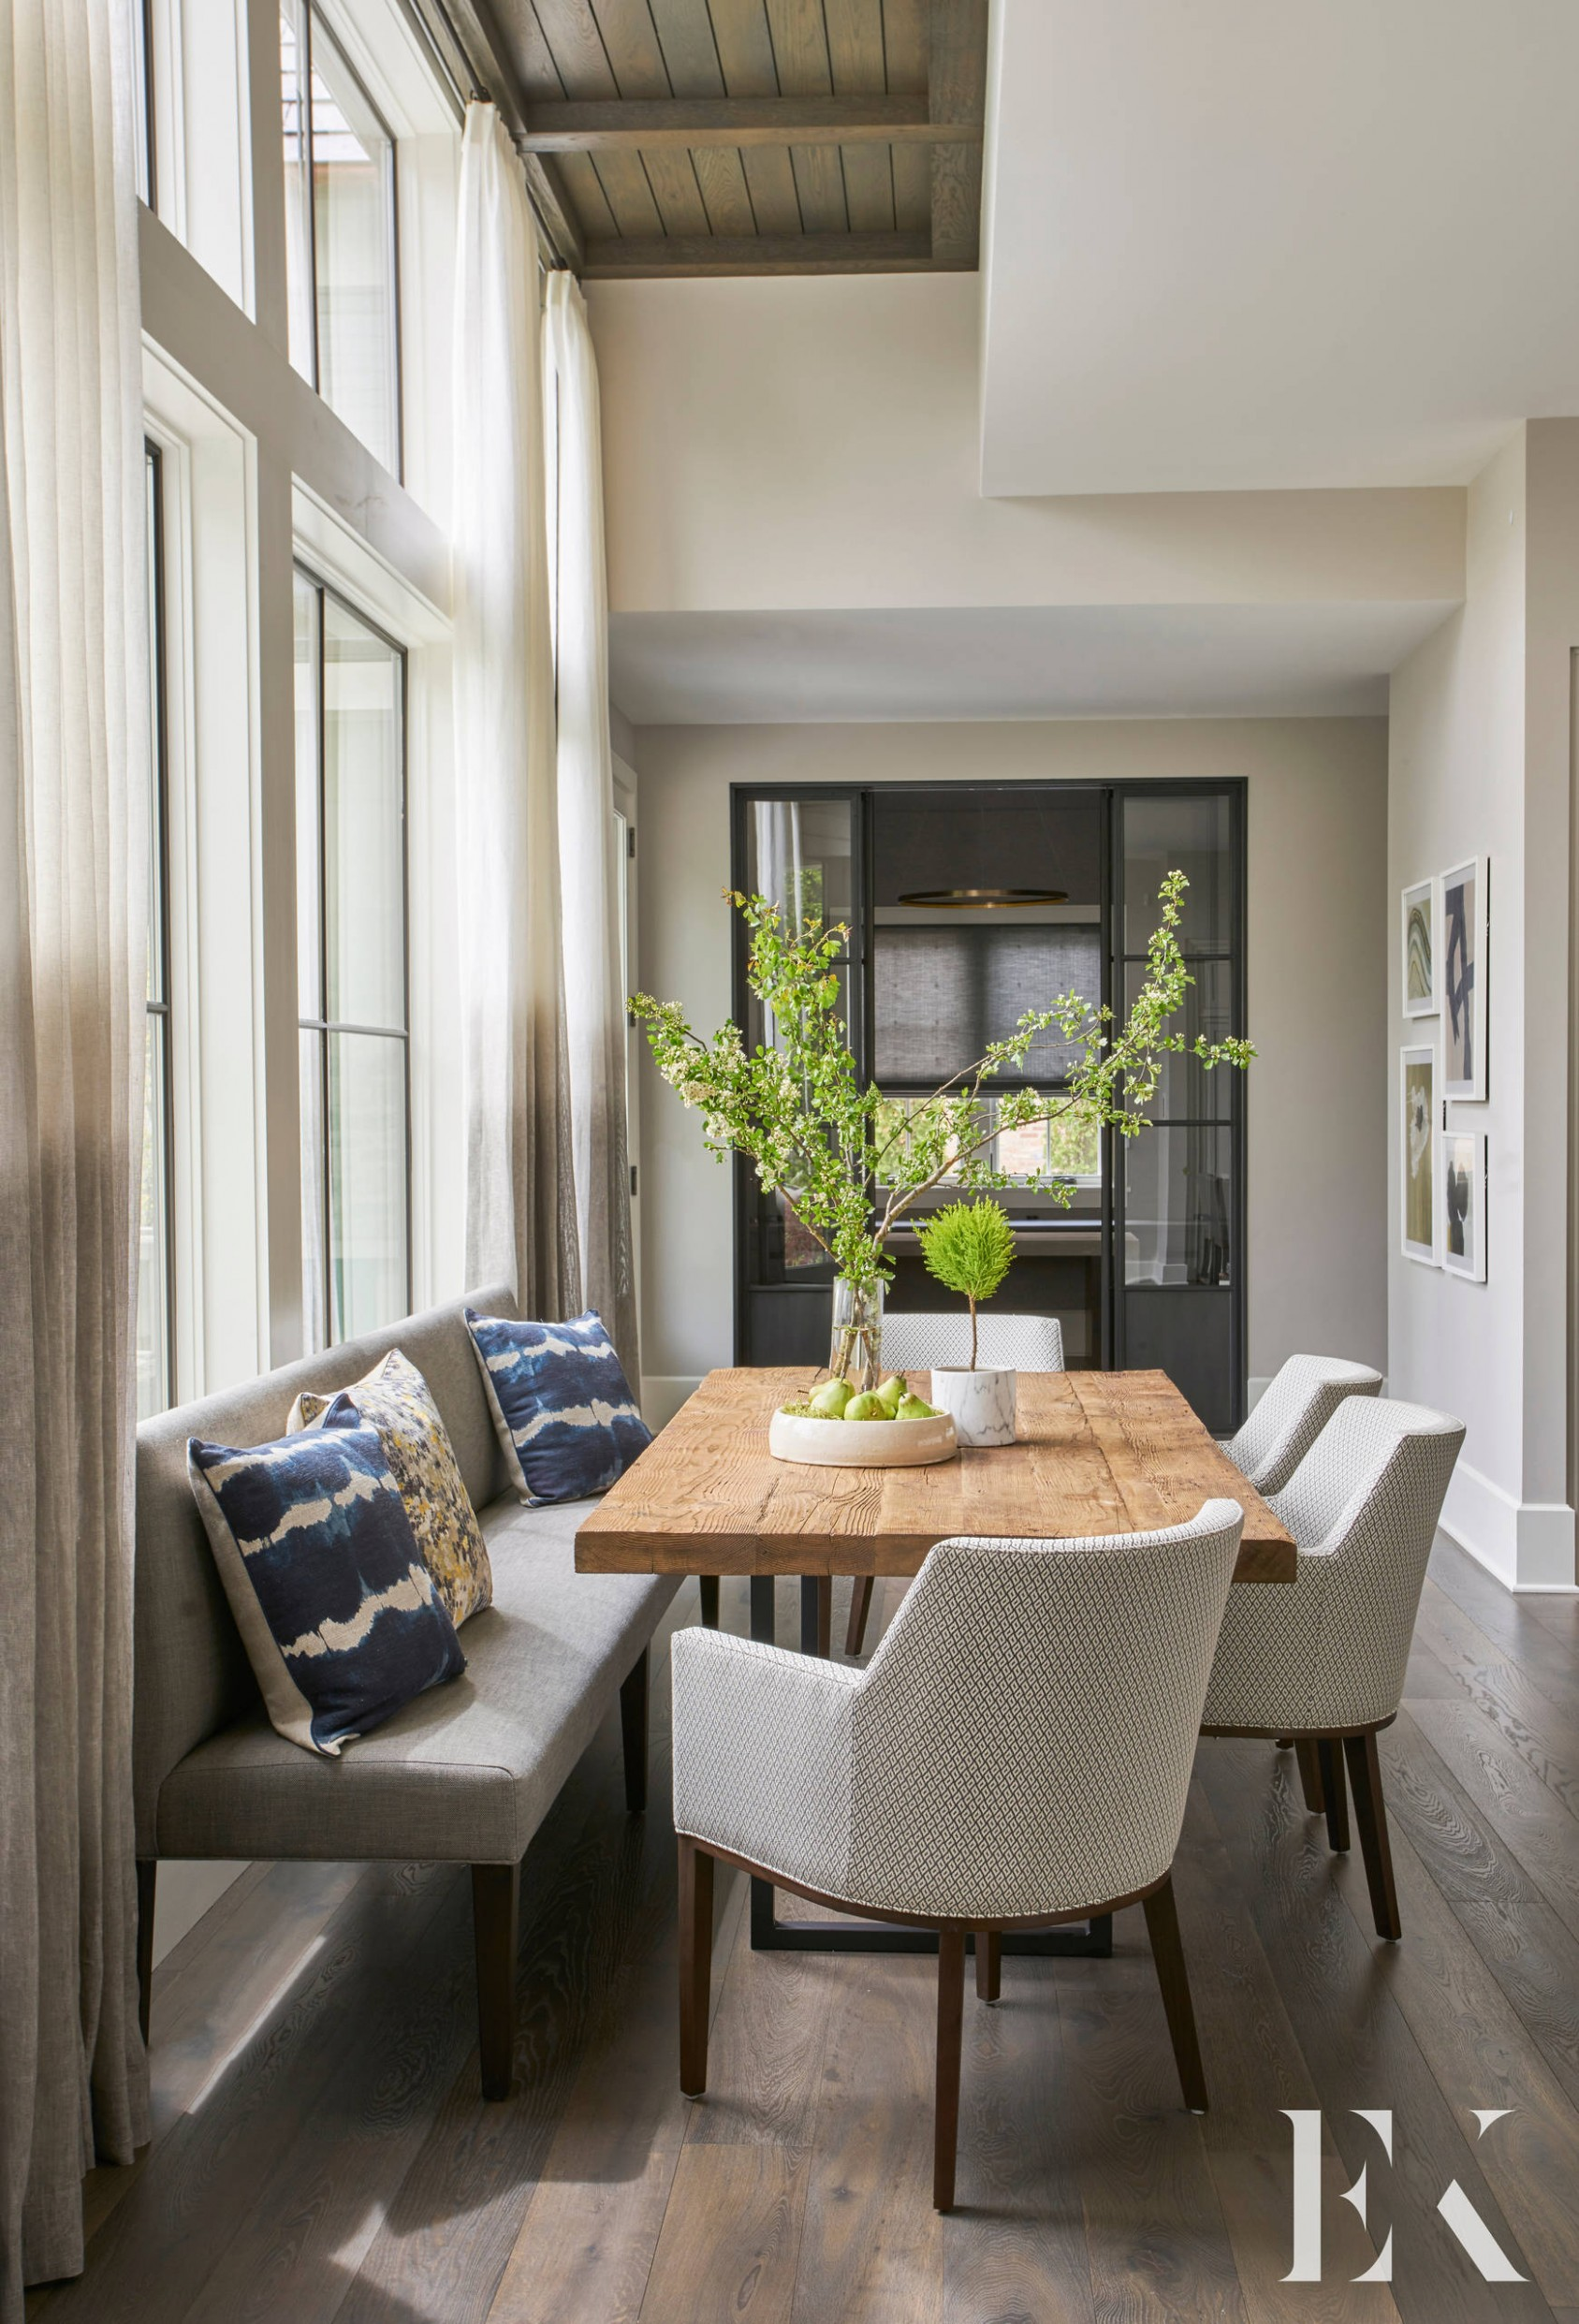 12 Beautiful Modern Dining Room Pictures & Ideas - November, 12  - Dining Room Decor Ideas Modern